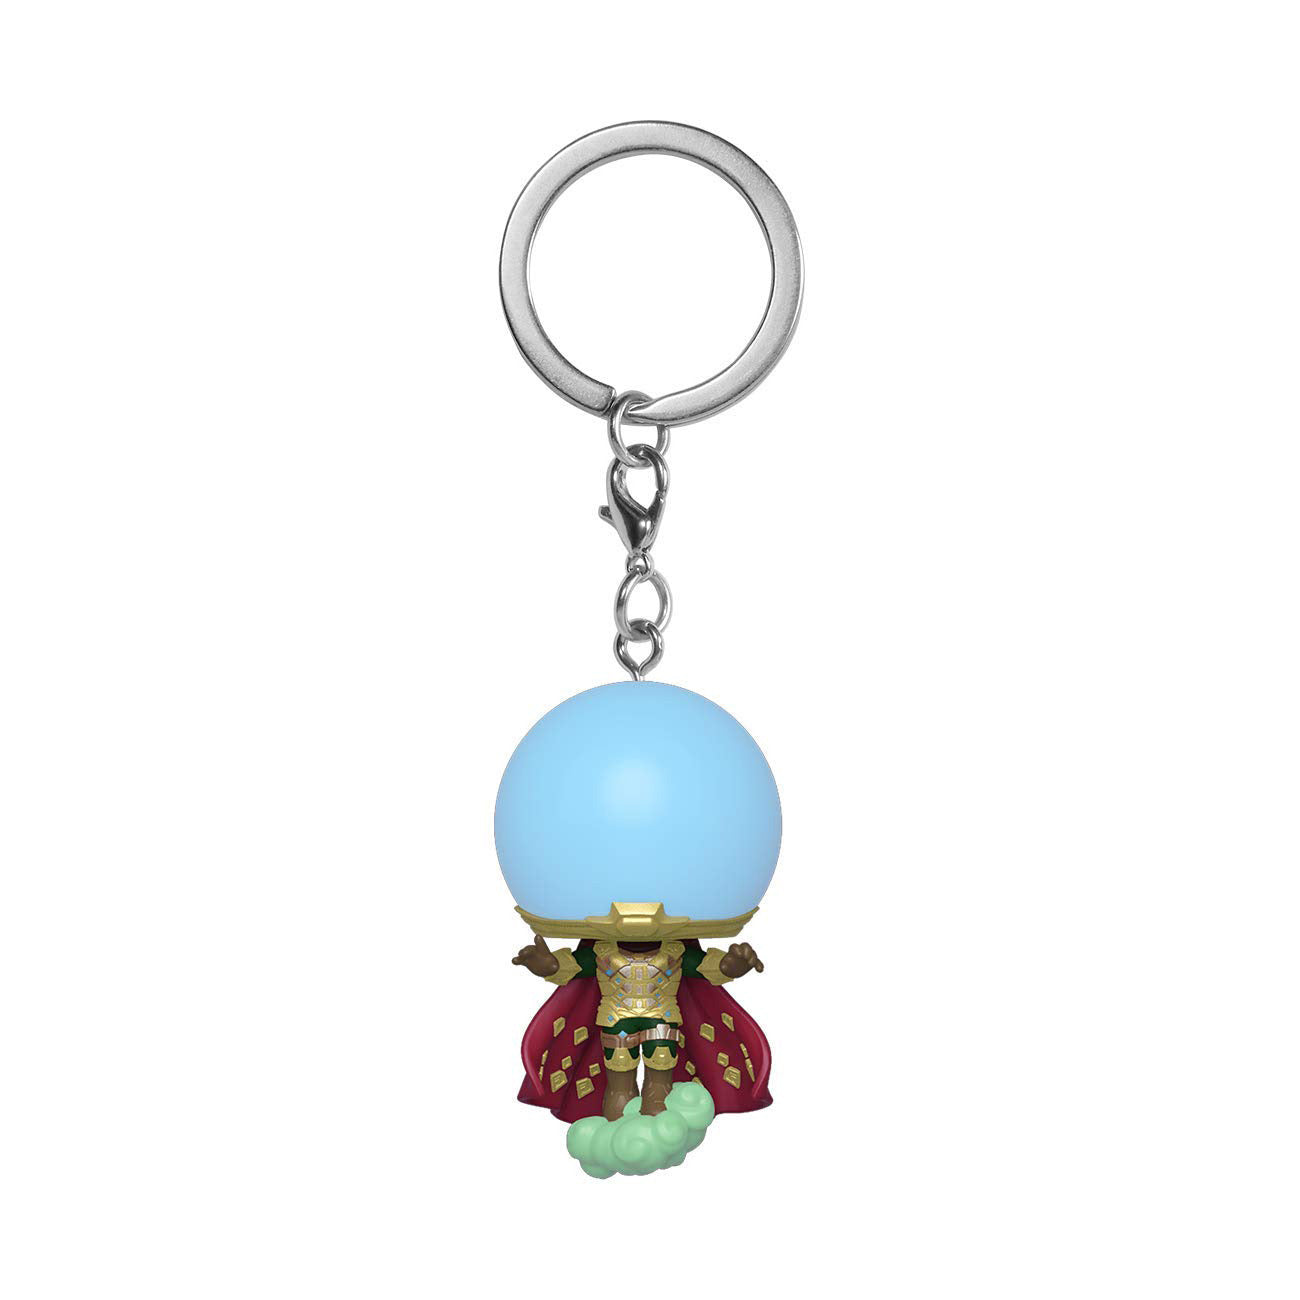 Marvel Spider-Man Far From Home Mysterio Pocket Pop! Keychain Bobblehead Figure